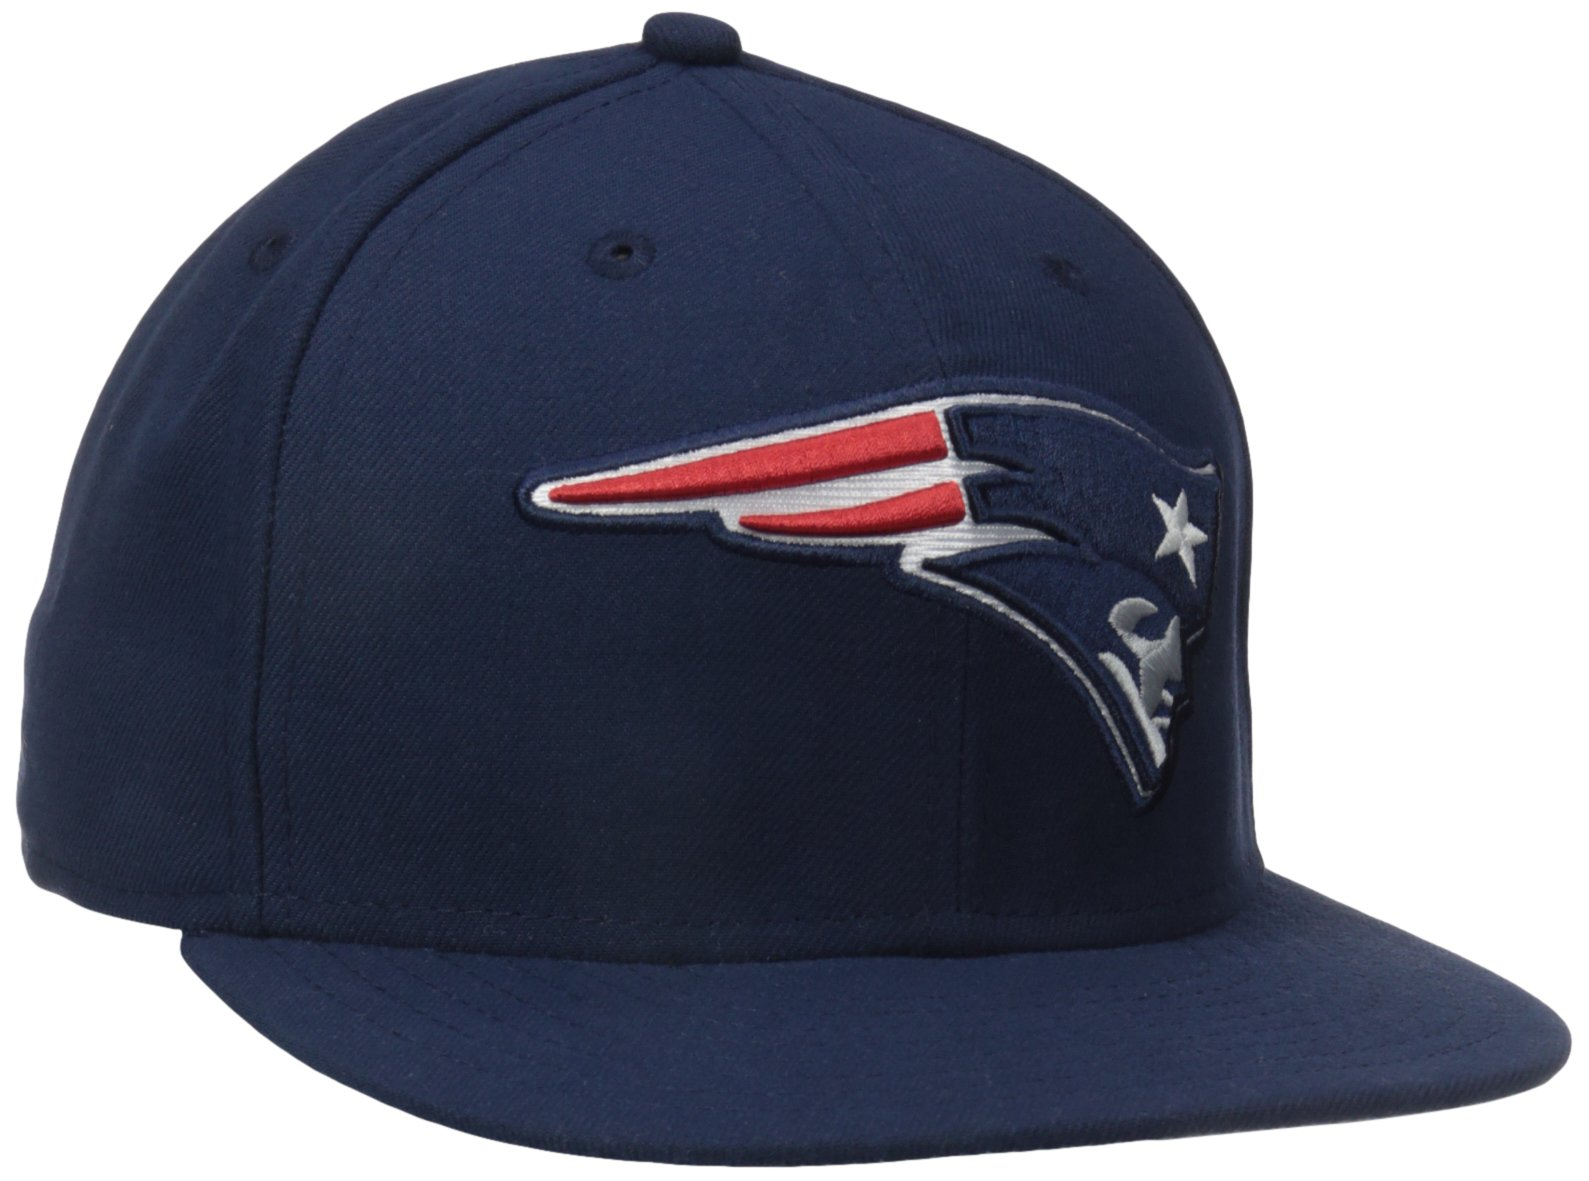 NFL New England Patriots On Field 5950 Game Cap, Navy, 7 3/8